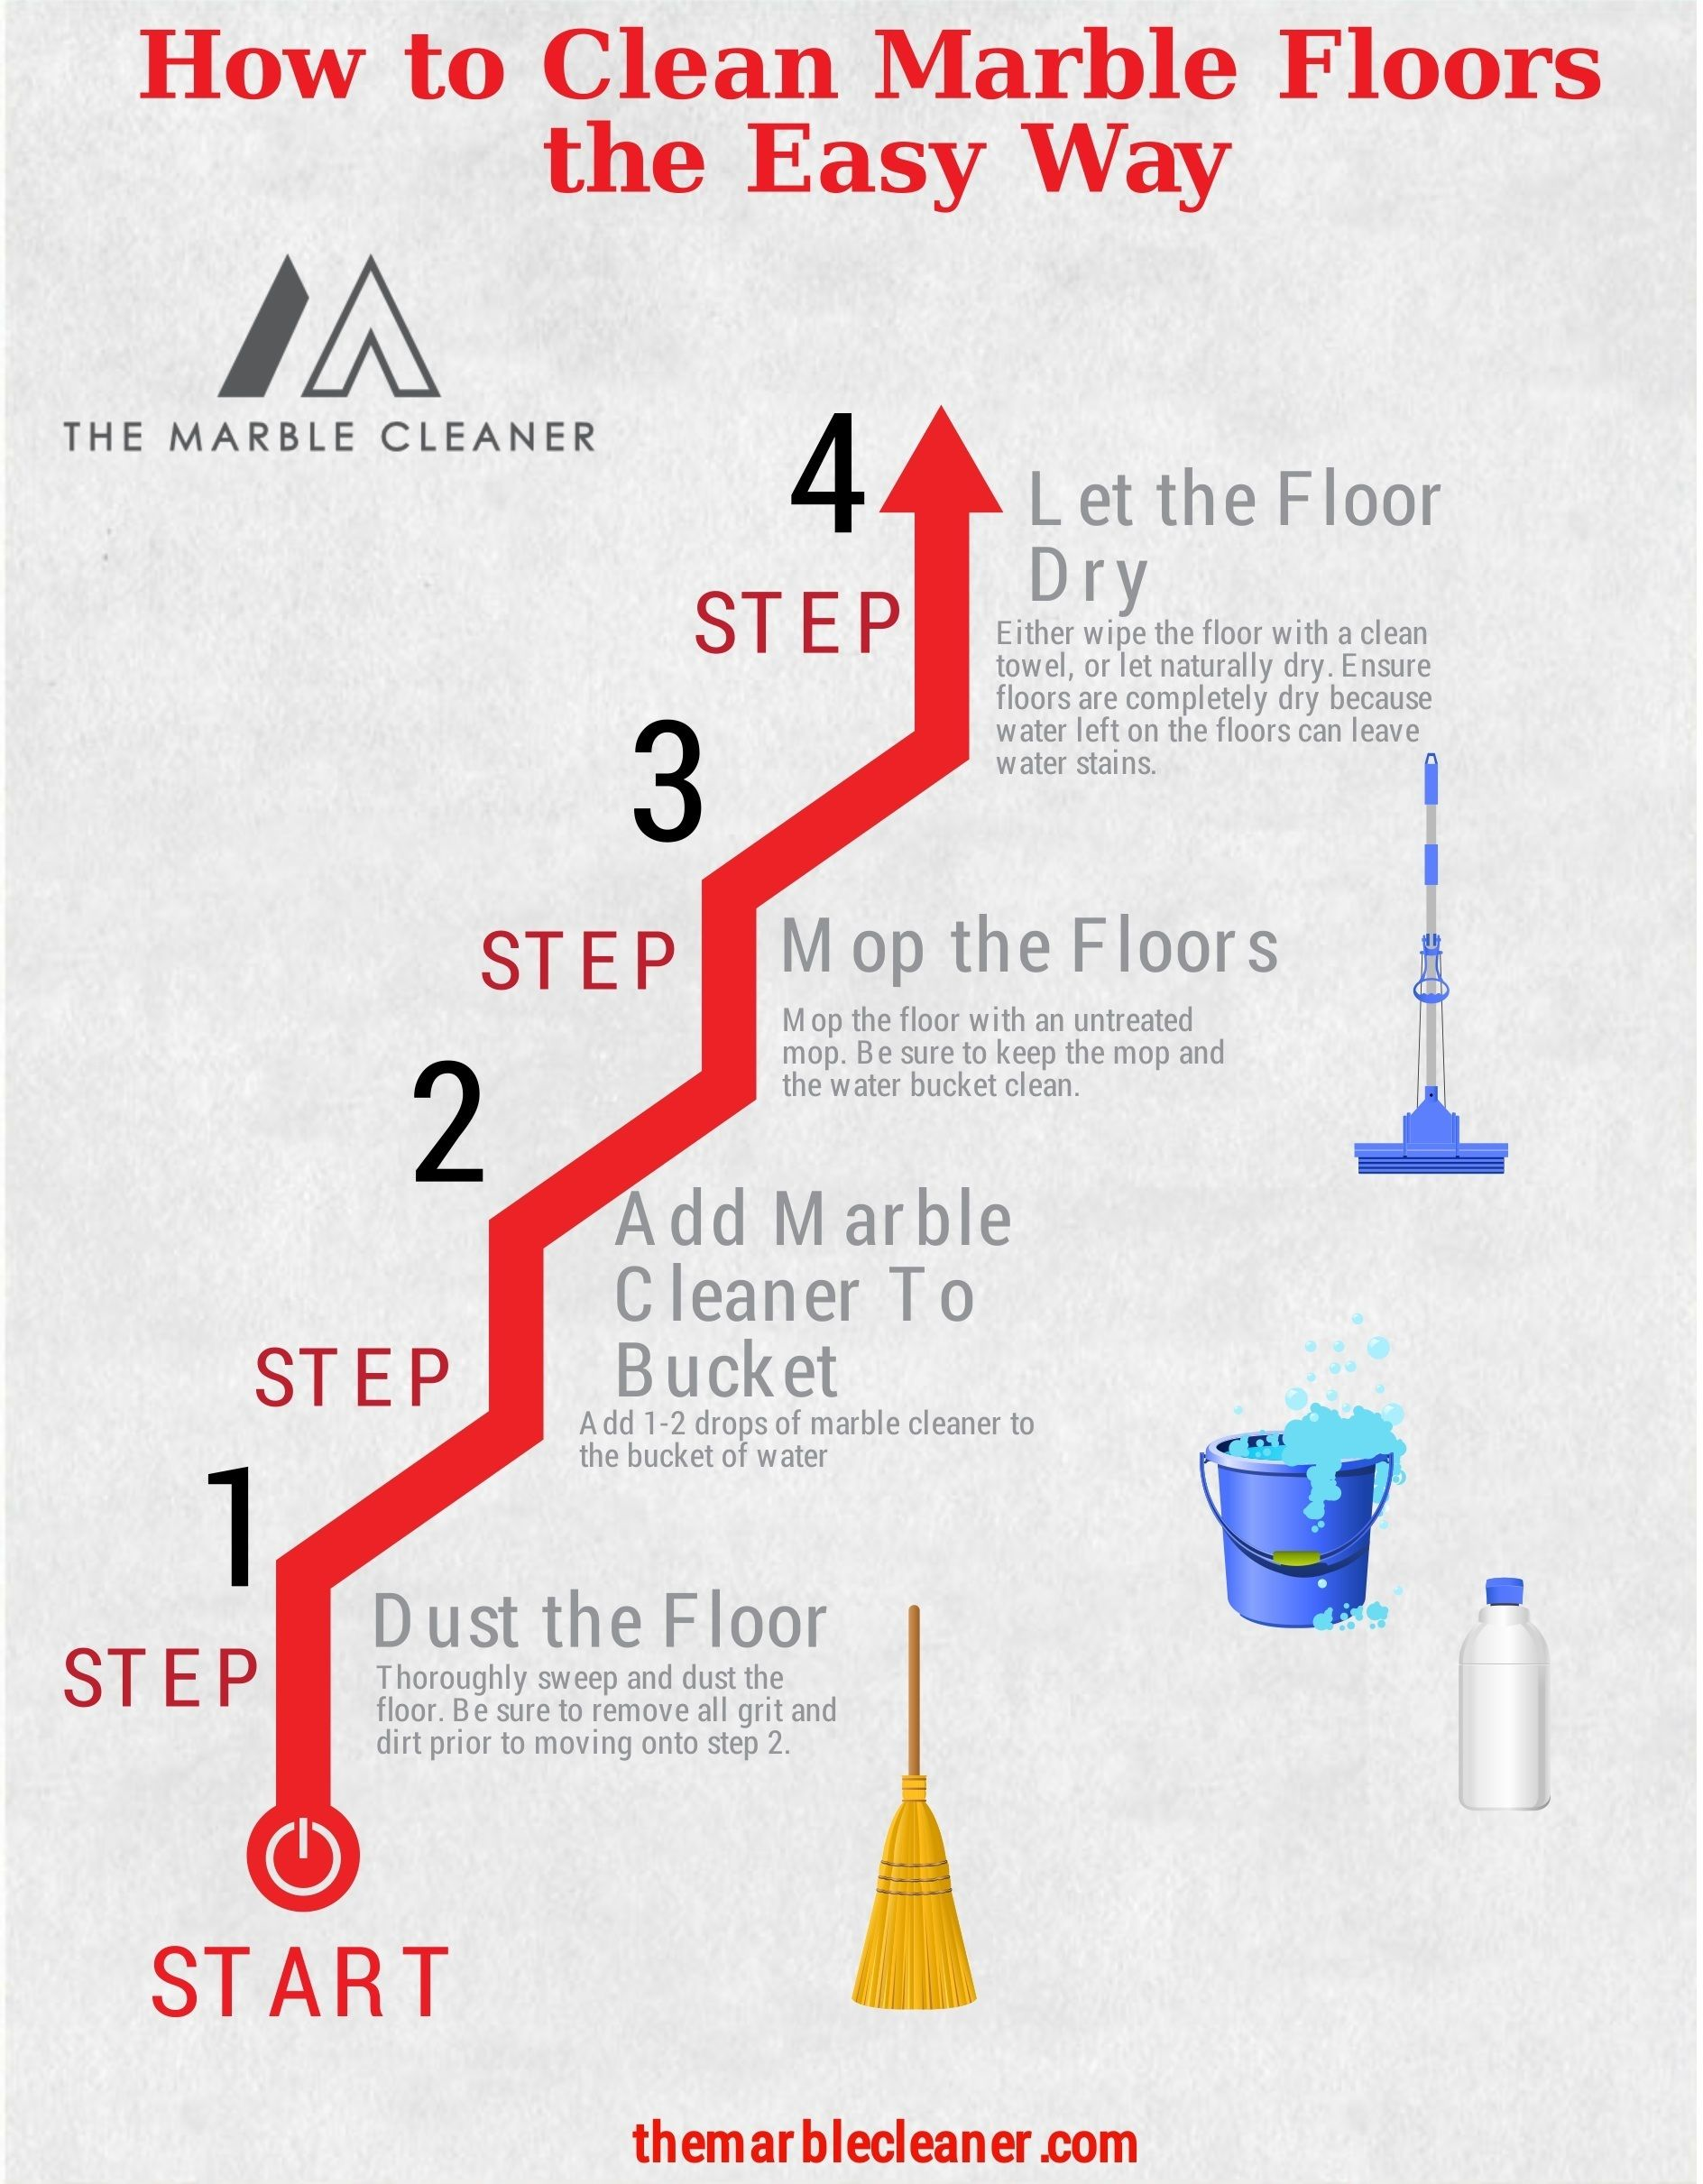 How To Clean Marble Floors The Easy Way Cleaning Marble Floors